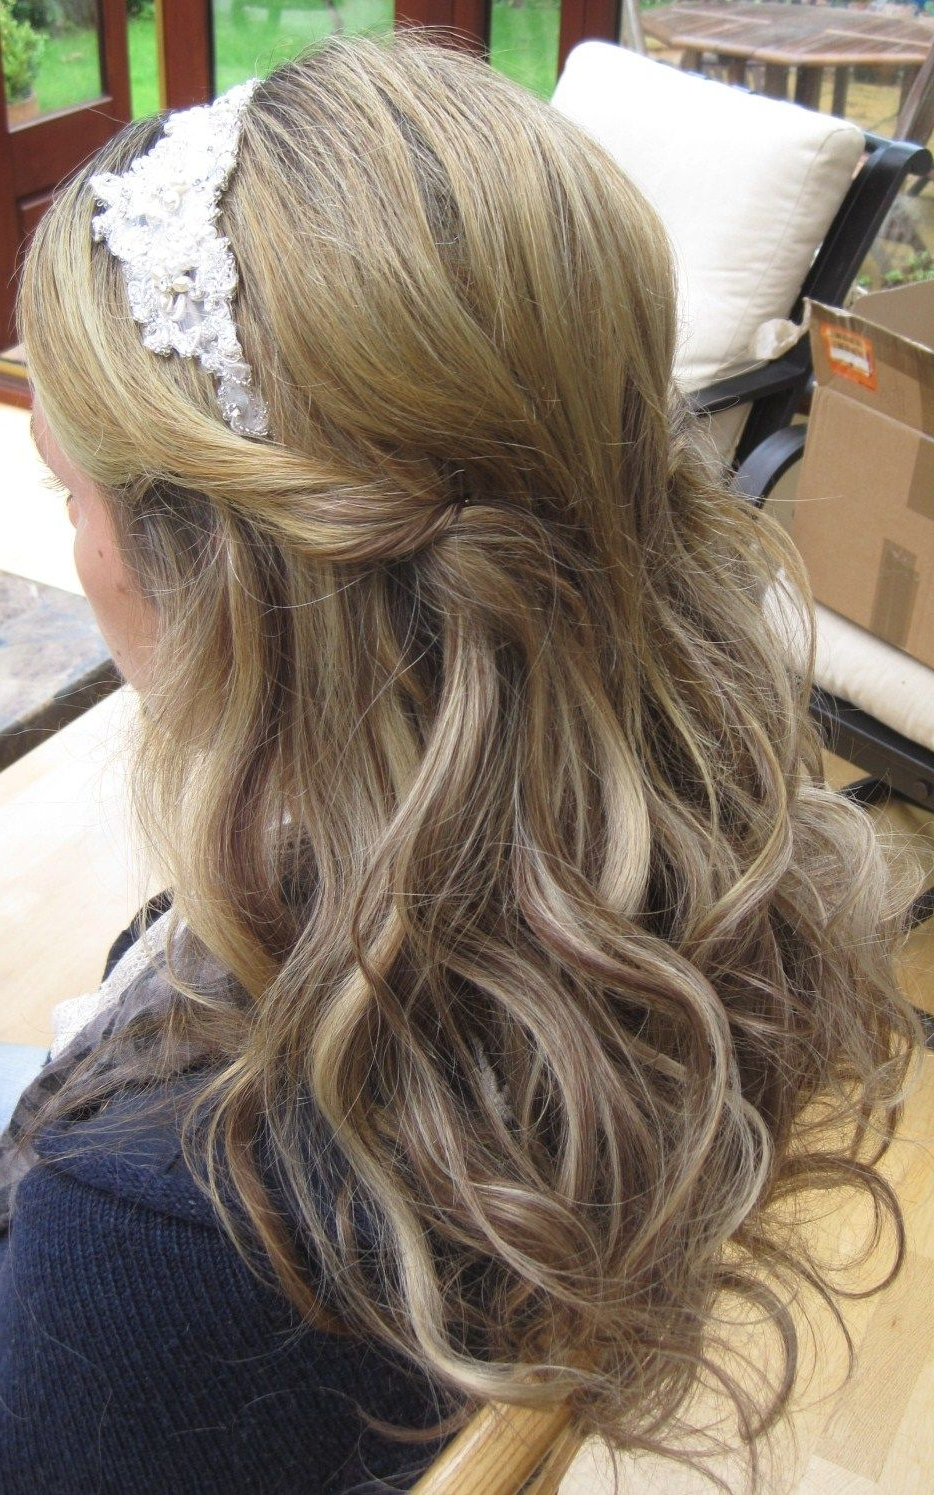 Fabulous Wedding Hairstyles Half Up For Thin Hair Model (View 5 of 20)